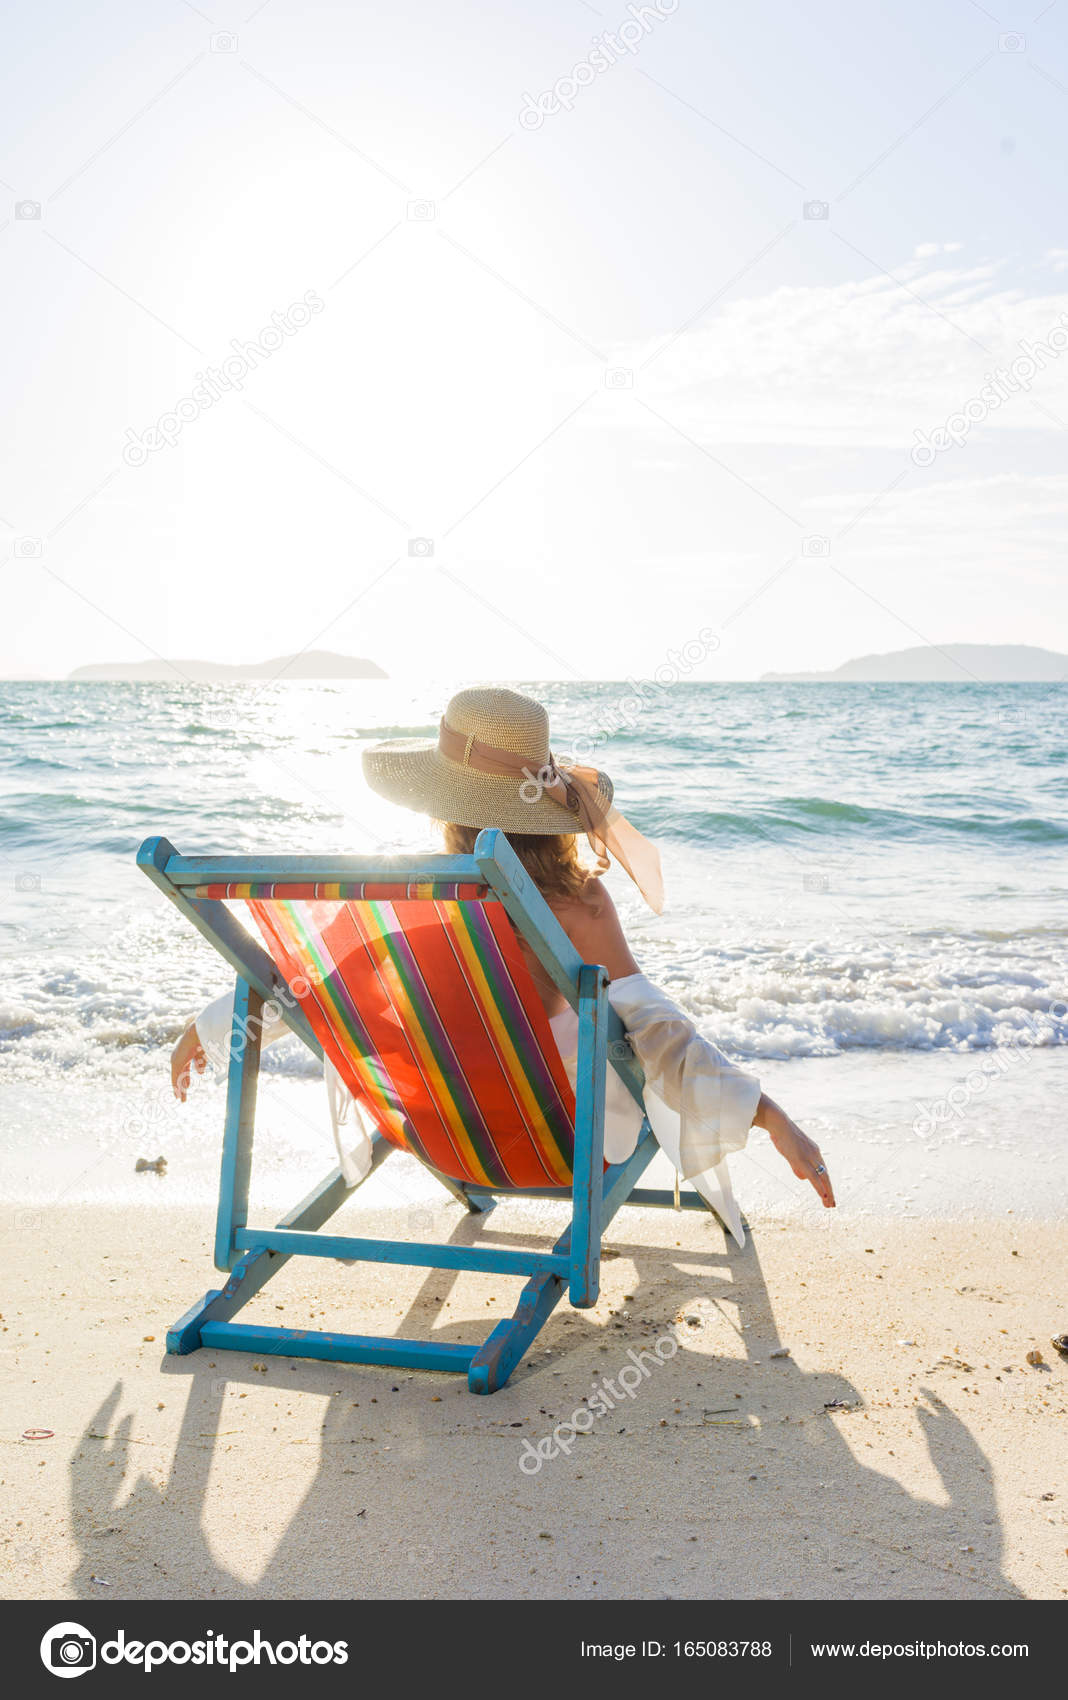 Bettsofa Florida Woman Relaxing On Sun Bed Sofa Lounge Chair On Holidays Stock